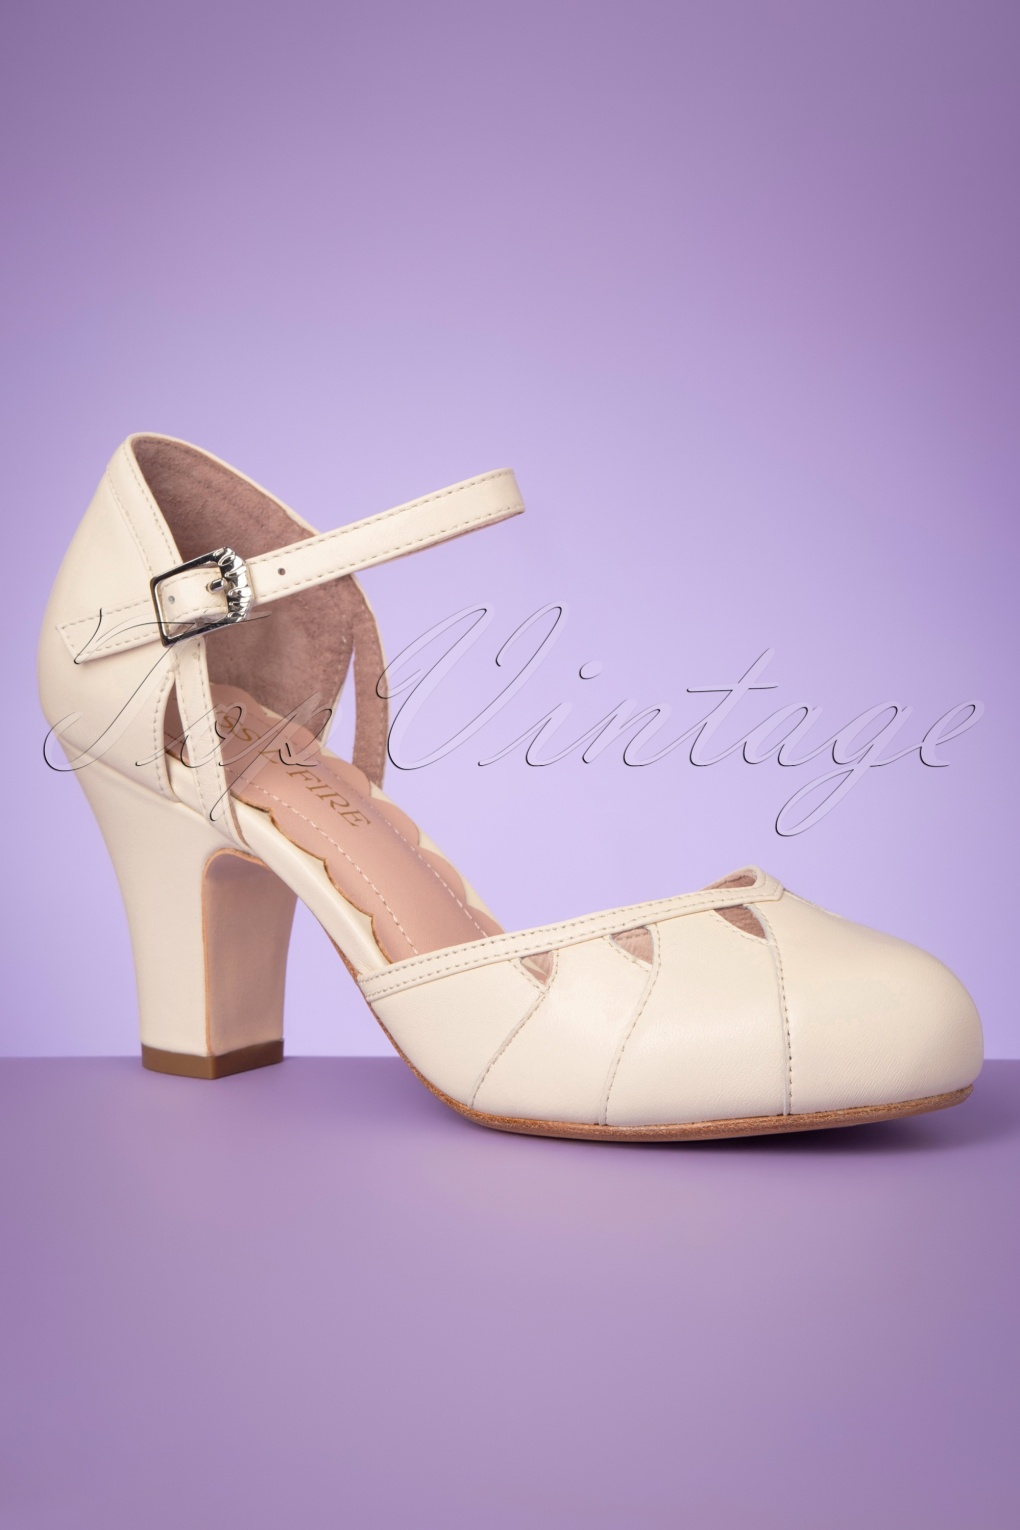 Pin Up Shoes- Heels, Pumps & Flats 40s Lucie Cut Out Pumps in Off White £157.69 AT vintagedancer.com